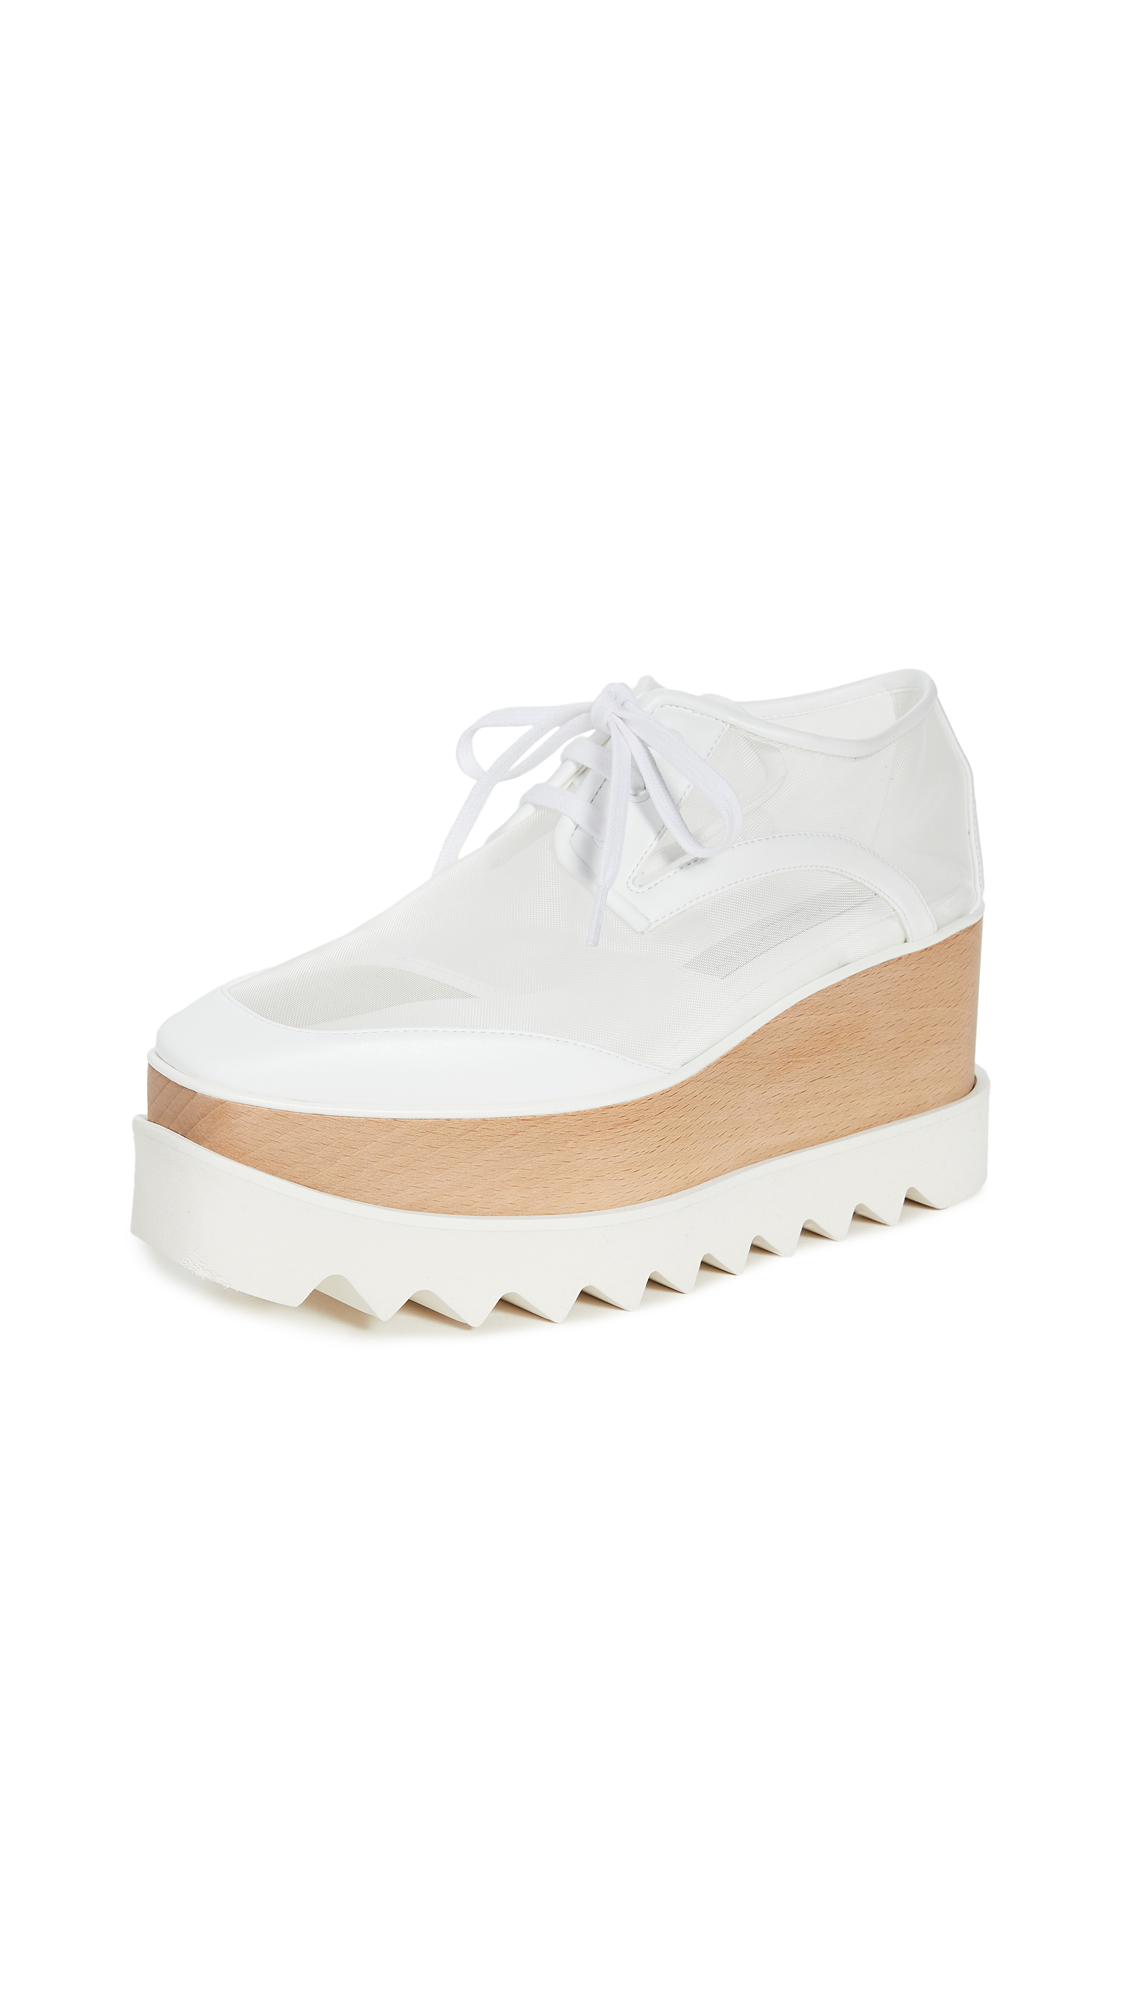 Stella McCartney Elyse Transparent Lace Up Shoes – 40% Off Sale